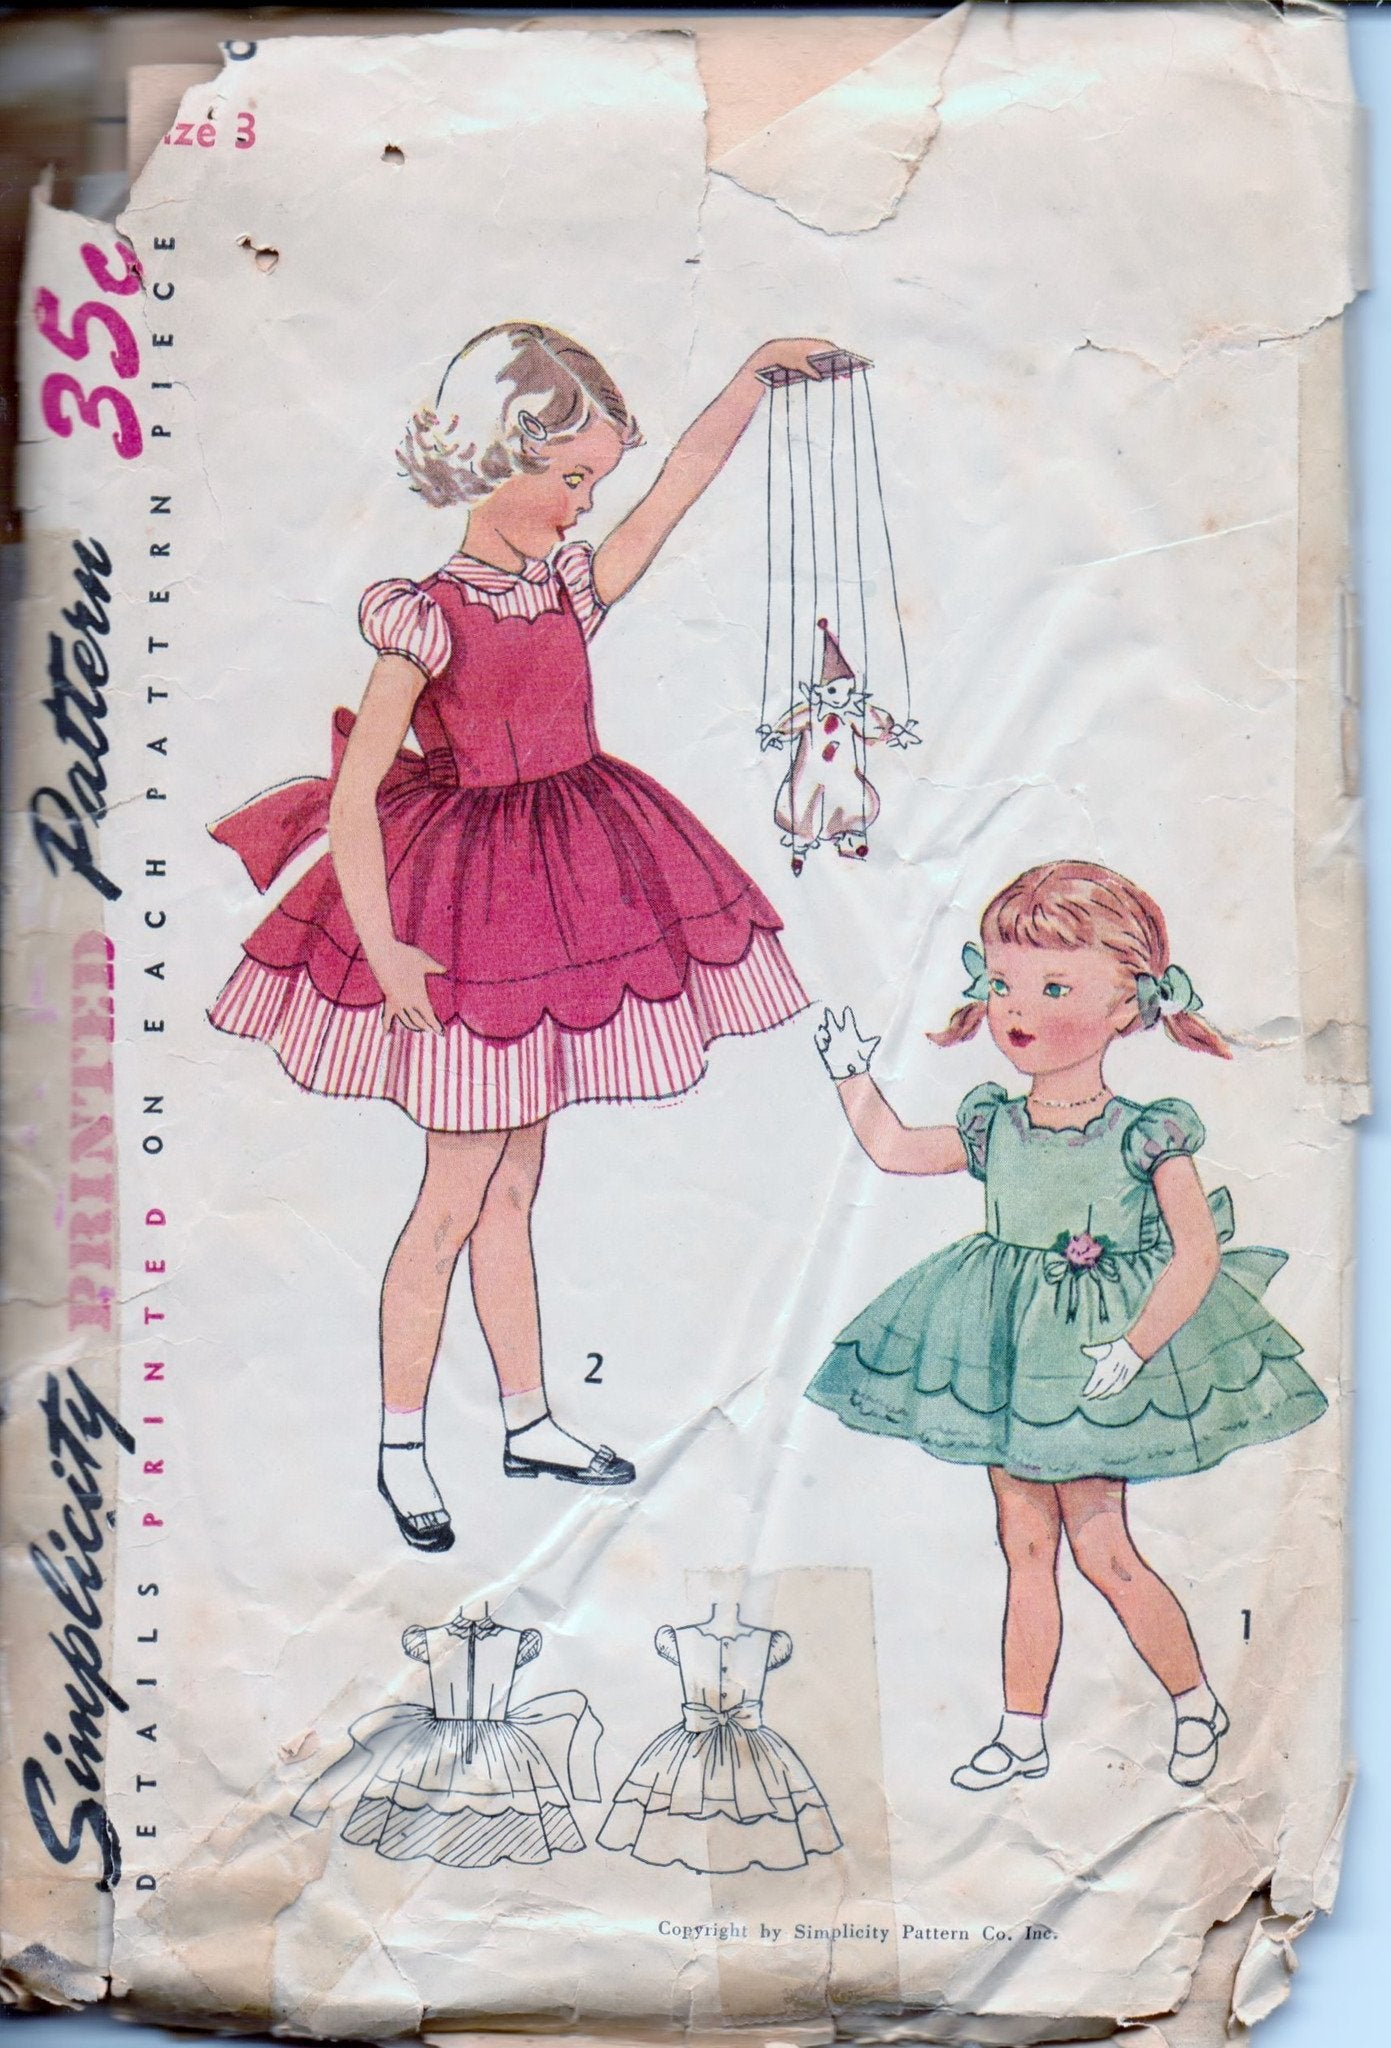 Simplicity 3808 Little Girls Toddler One-Piece Dress Vintage 1950's Sewing Pattern - VintageStitching - Vintage Sewing Patterns